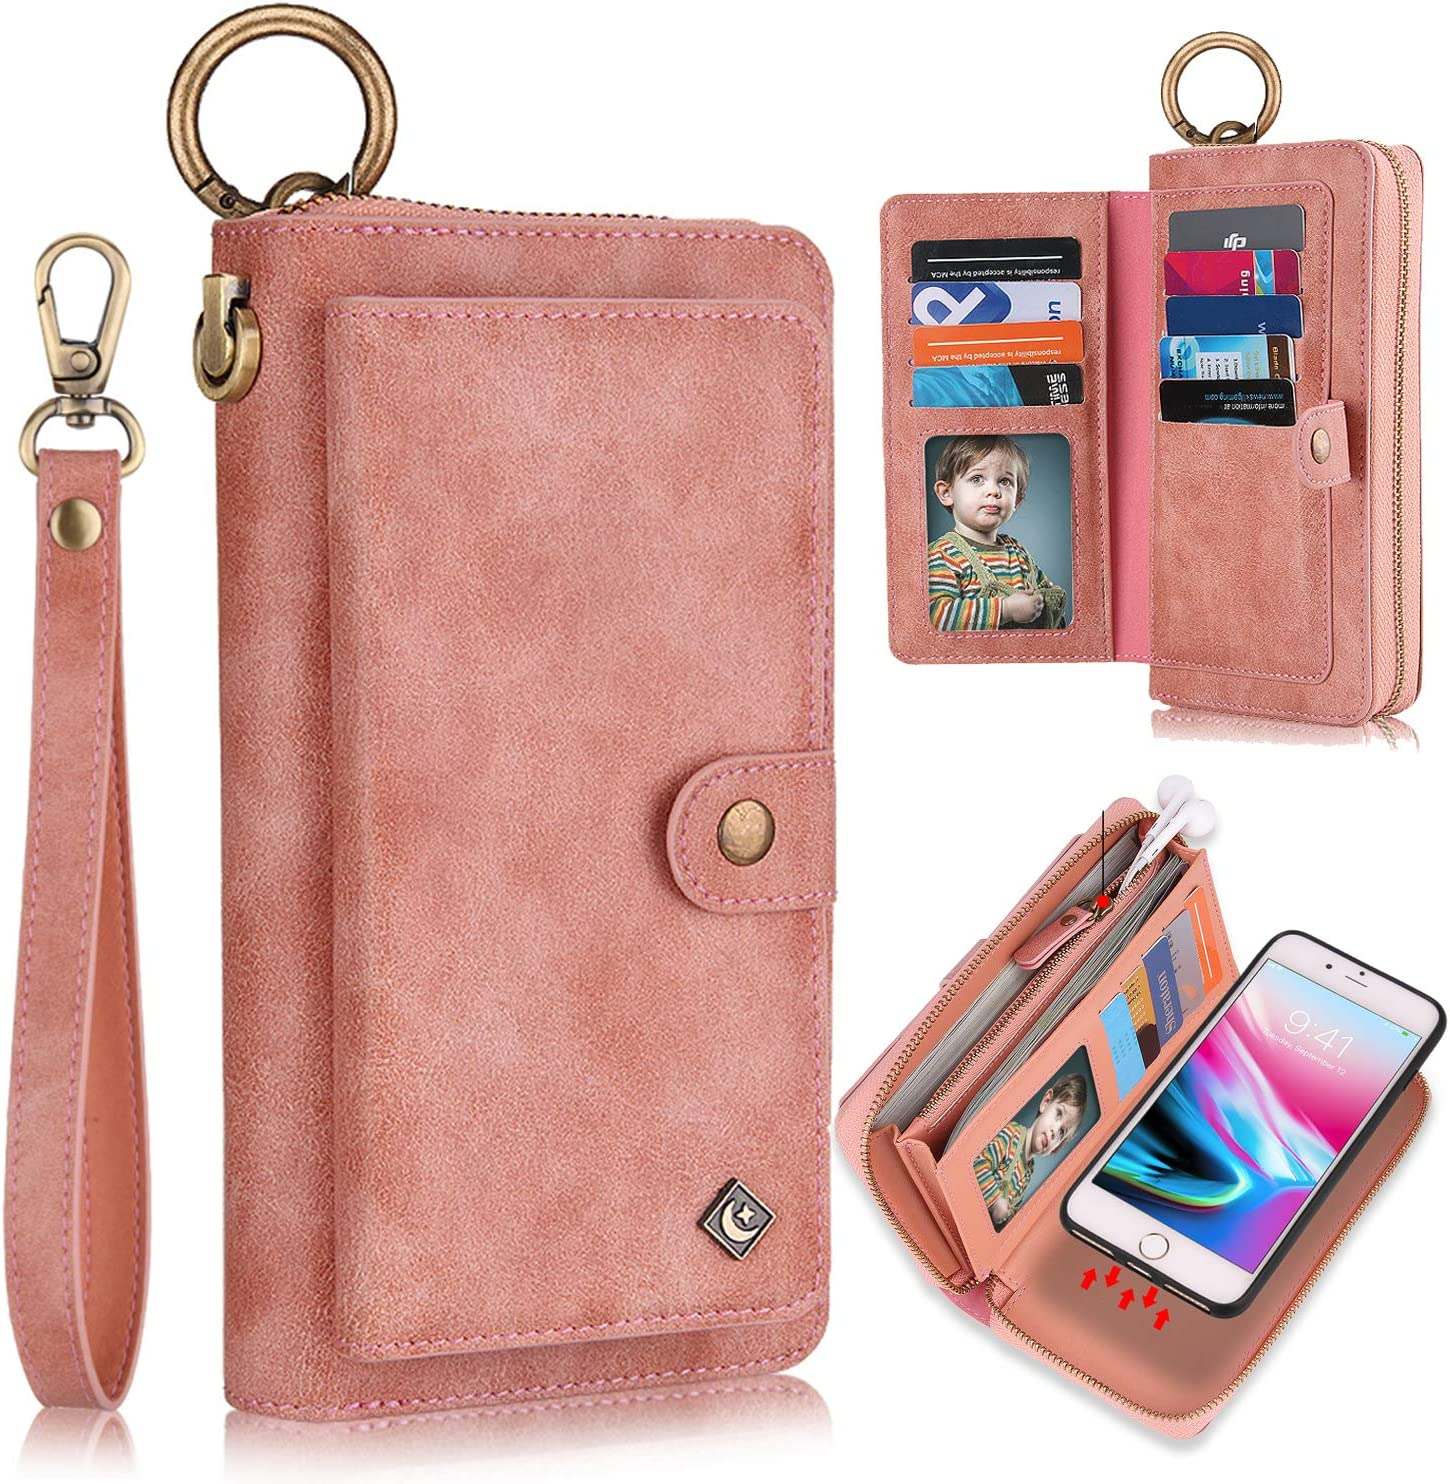 iPhone 7 Case, iPhone 8 Case, iPhone SE 2020 Wallet Case, XRPow [2 in 1] [Magnetic Detachable] Zipper Wallet Folio Case [Wrist Strap] Slim Shock Back Cover with Credit Card Purse (4.7Inch) - Rose Gold